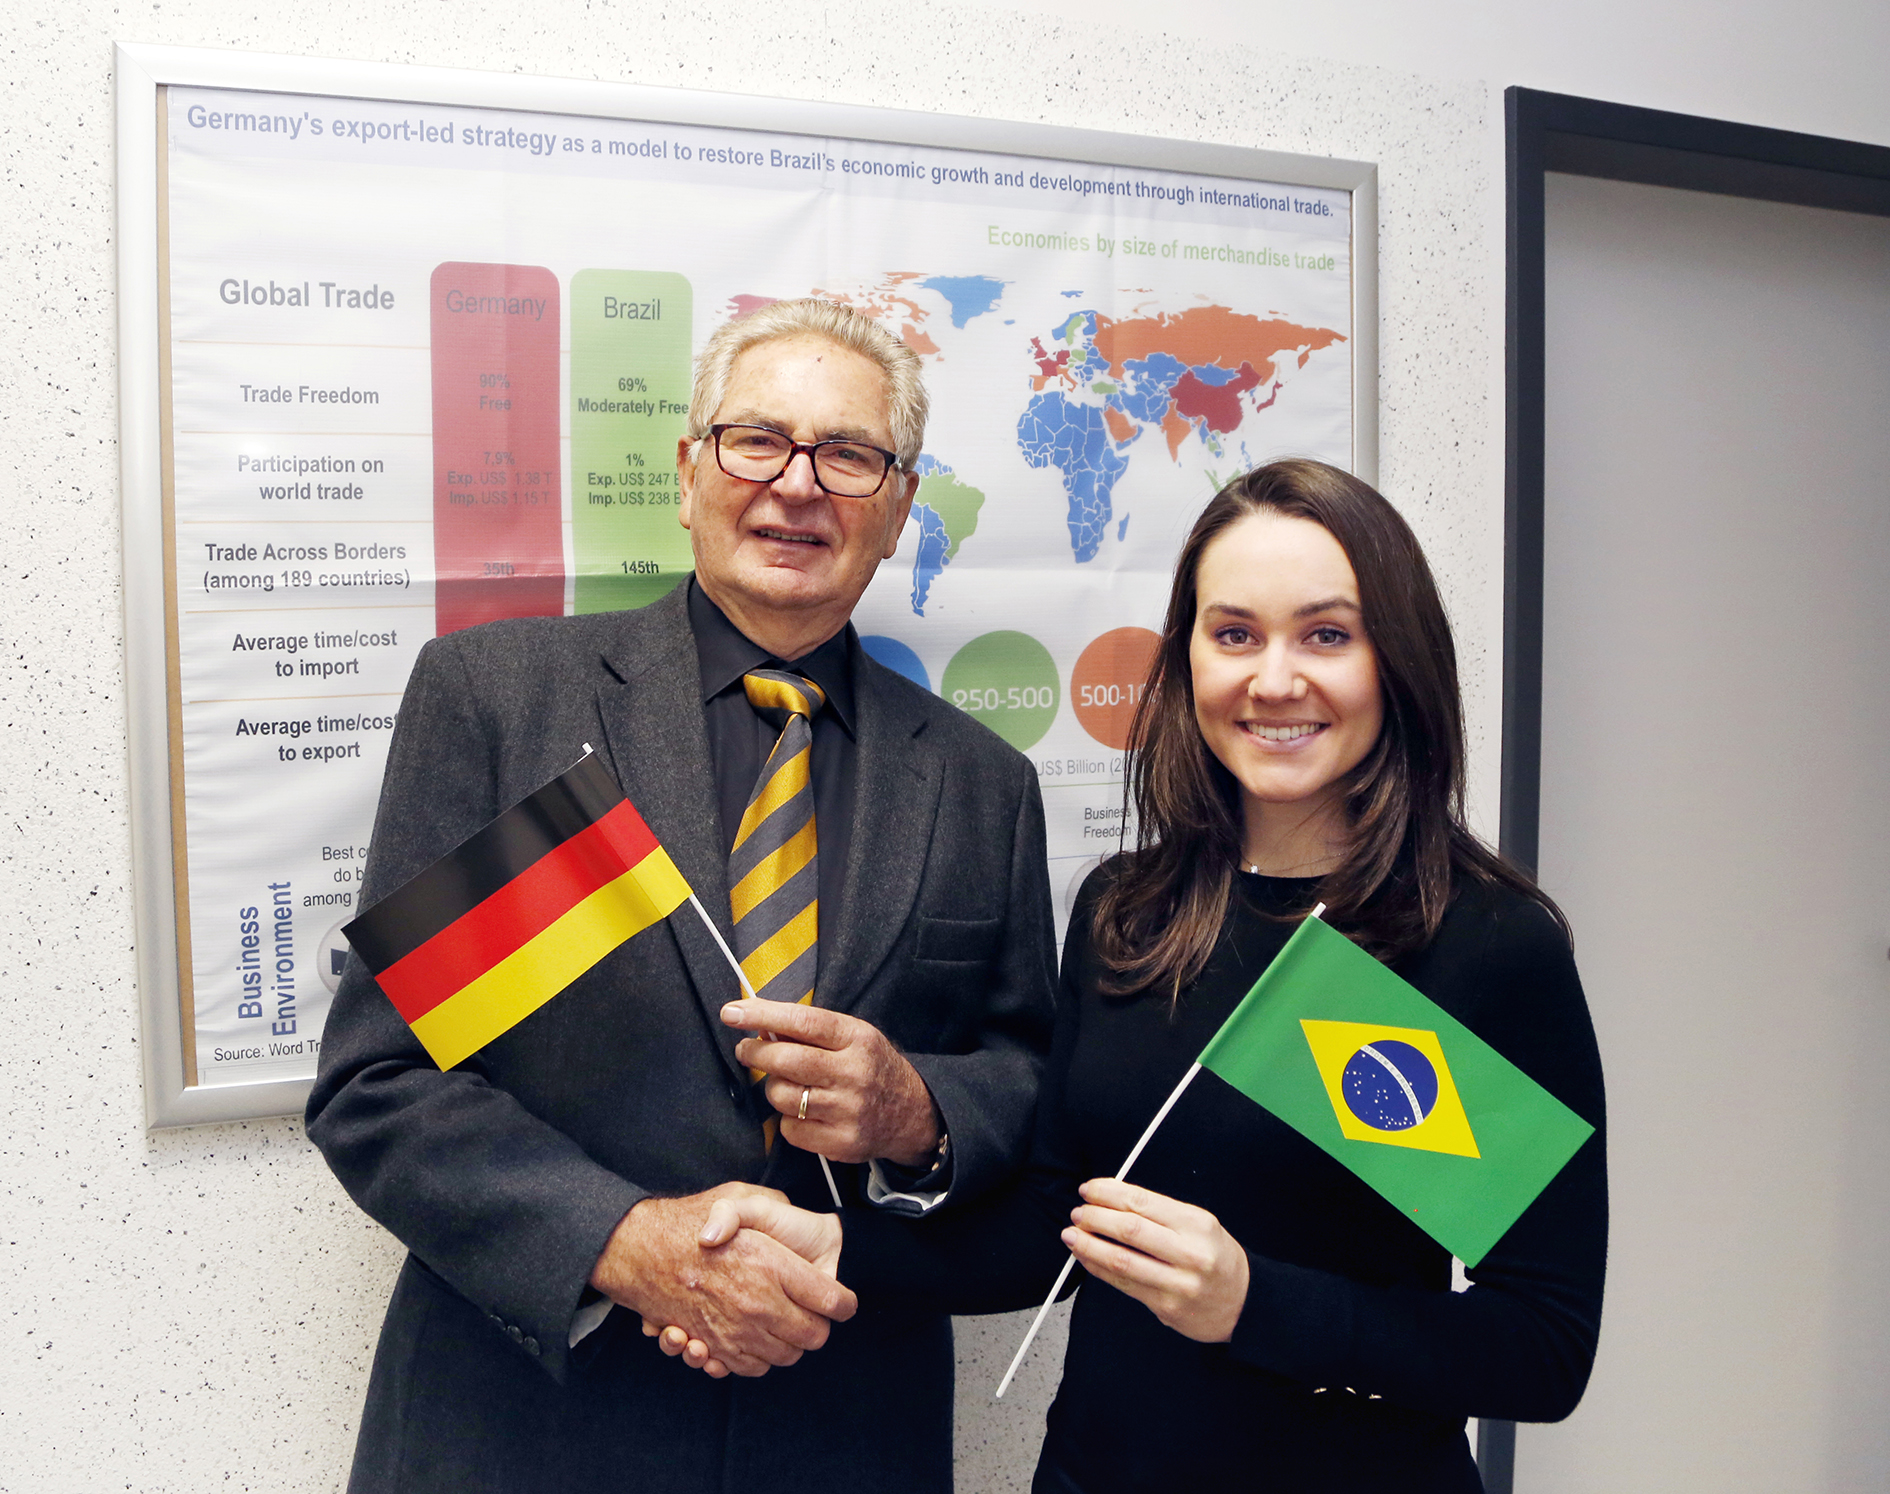 Giovanna Zeny, Prof. Dr. Klaus Rother